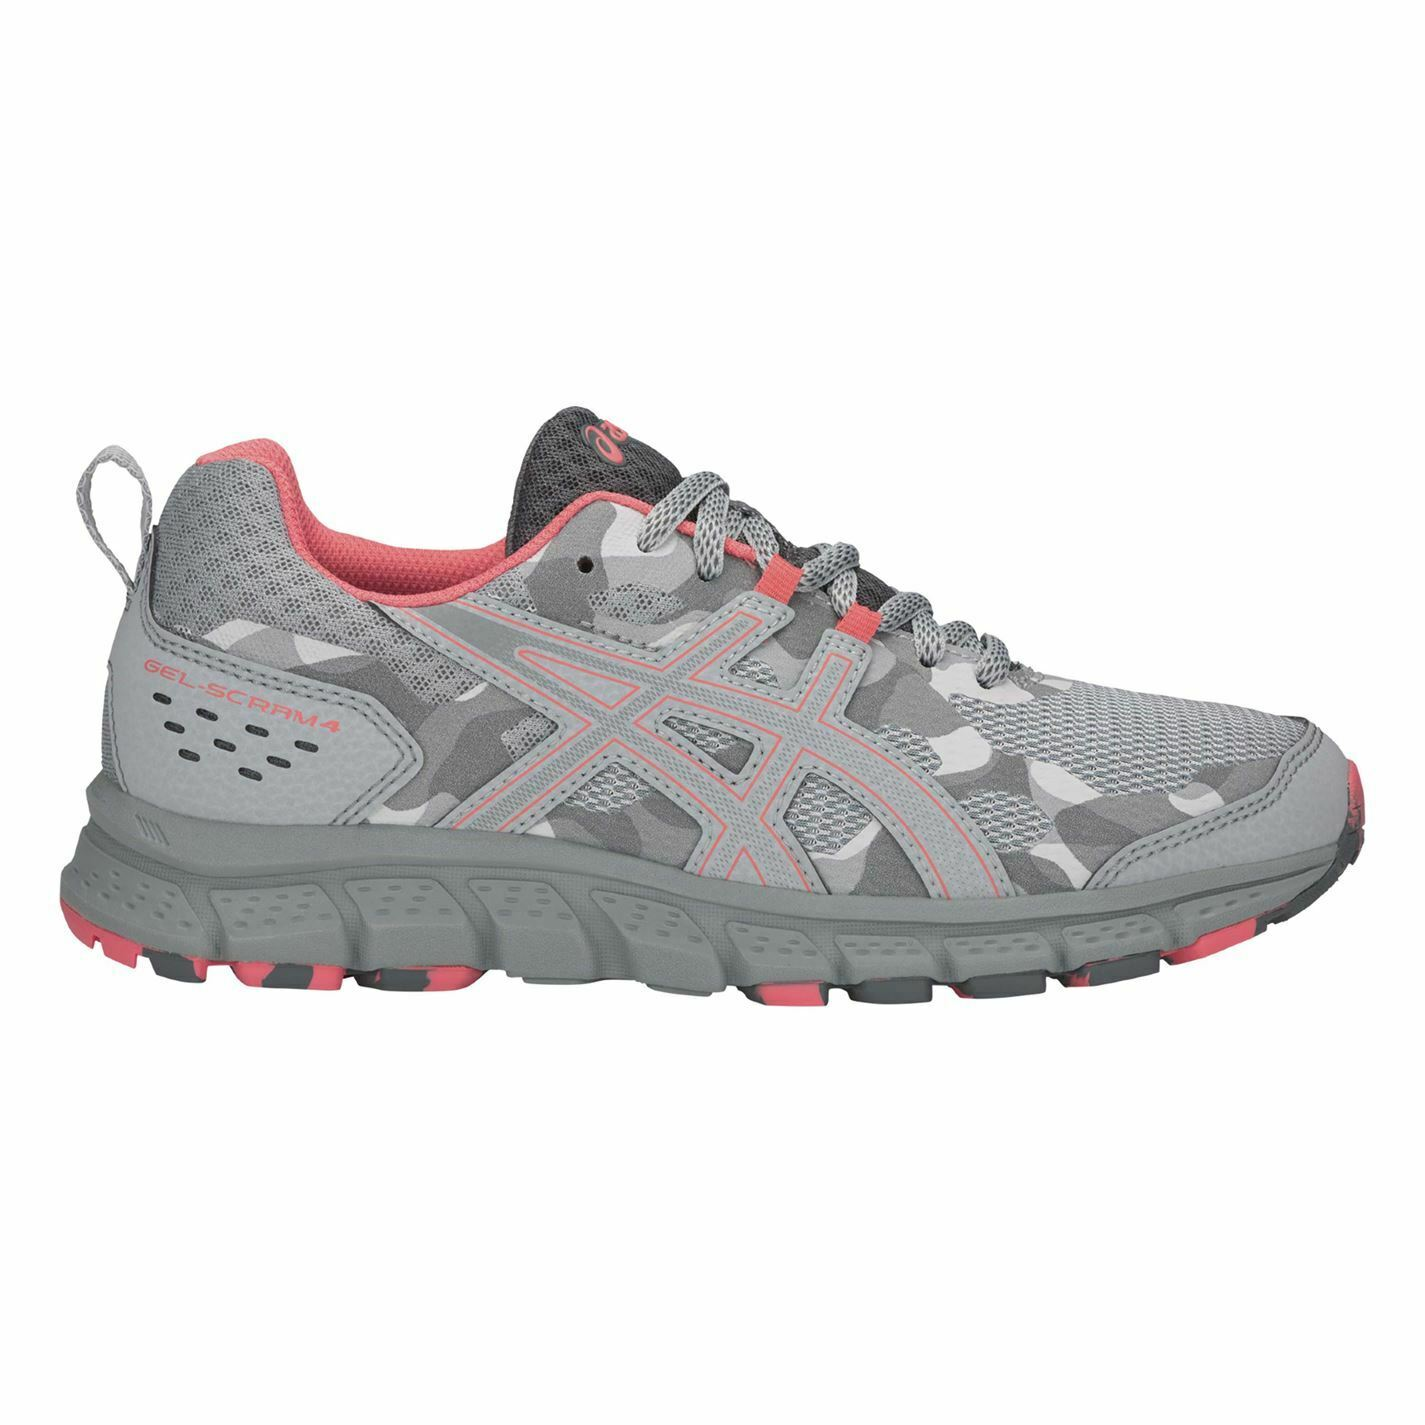 Asics Gel Scram 4 Trail Running shoes Ladies